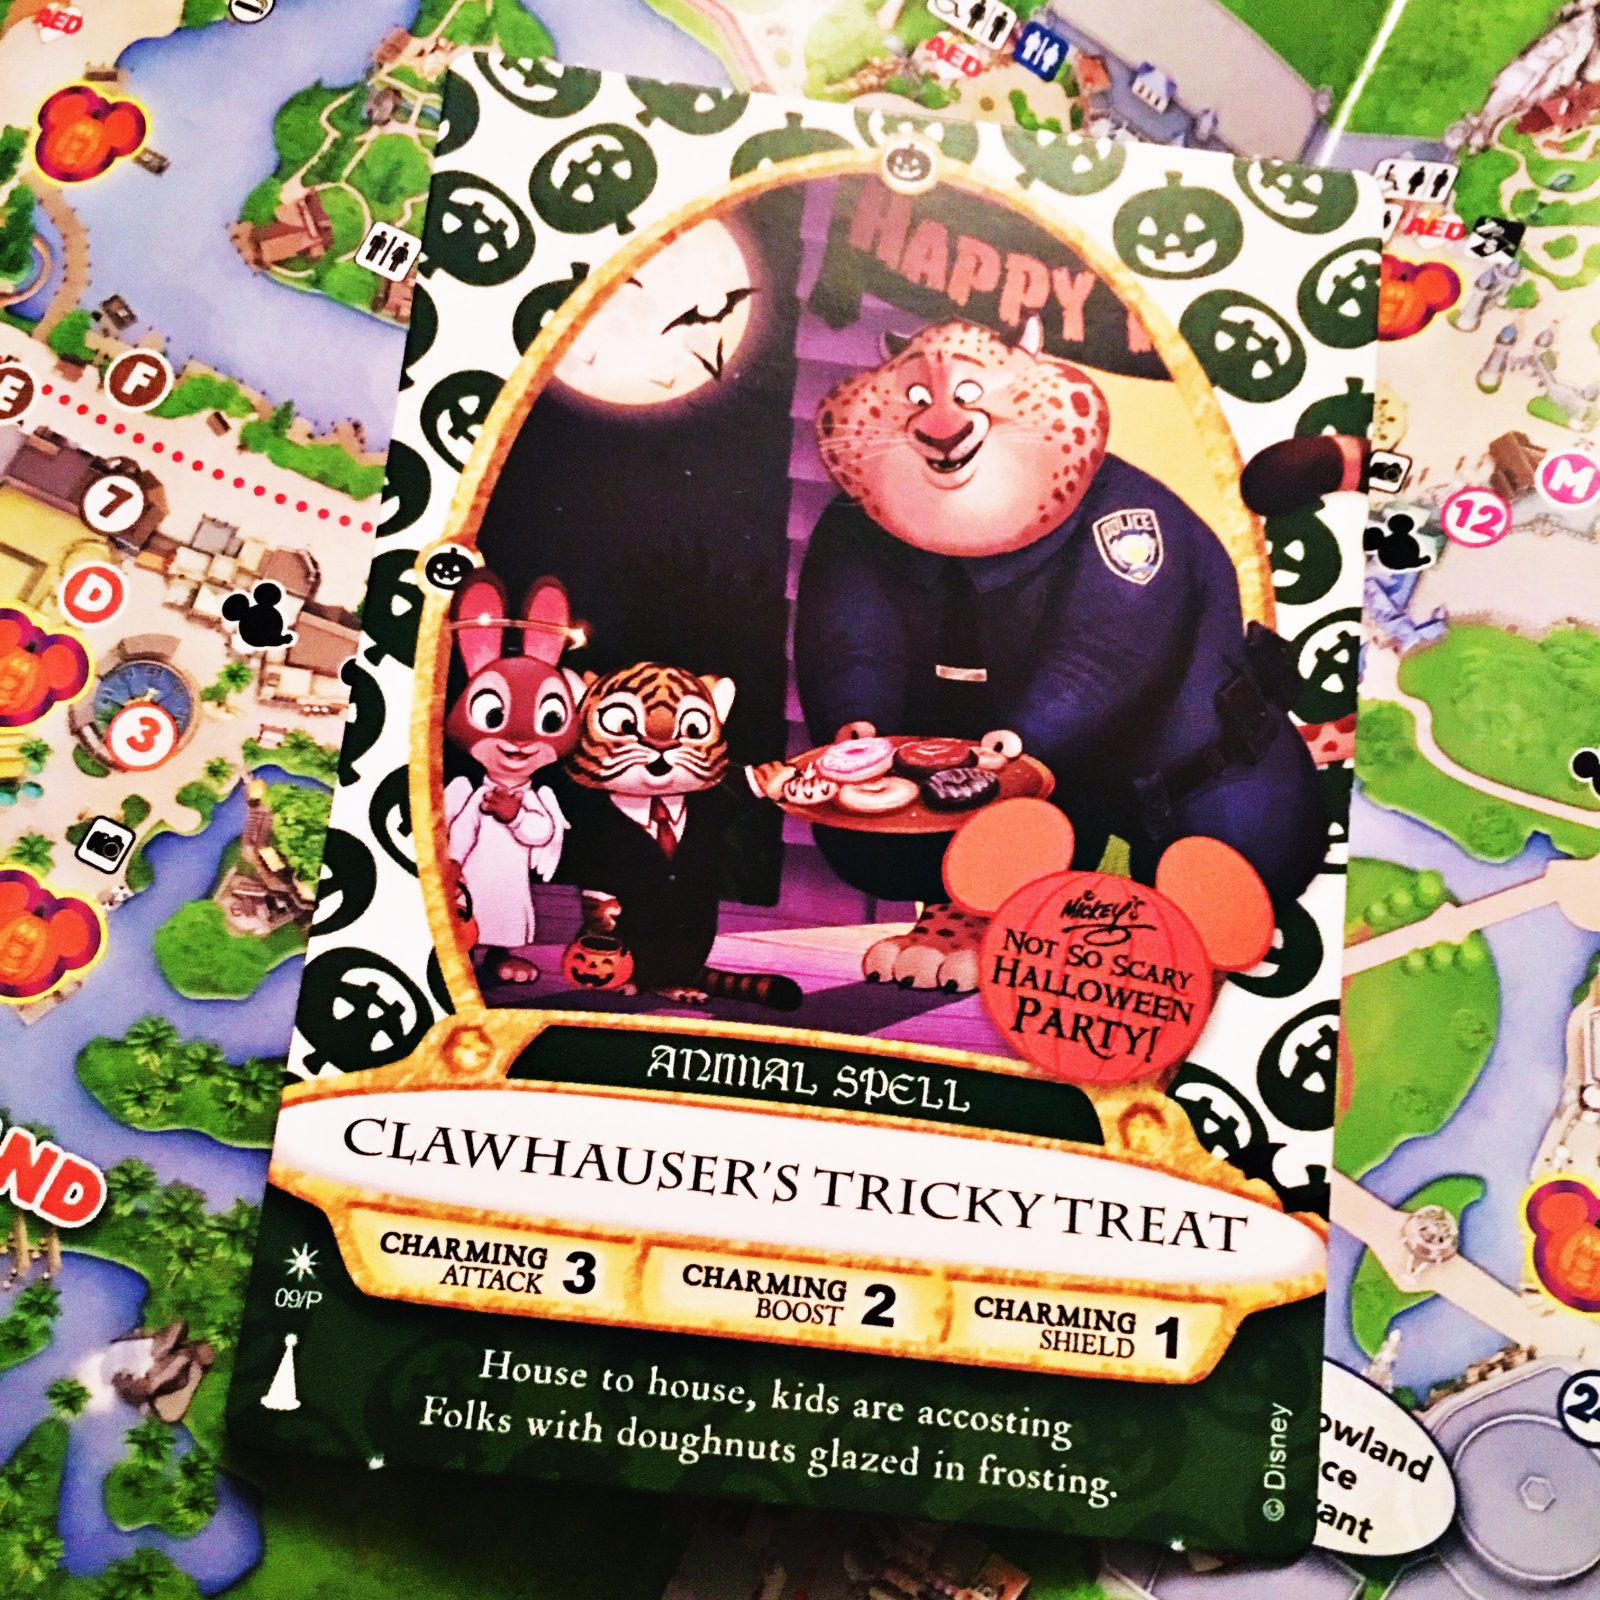 Mickey's Not So Scary Halloween Party 2016 - Party Highlights - Sorcerers Card and map